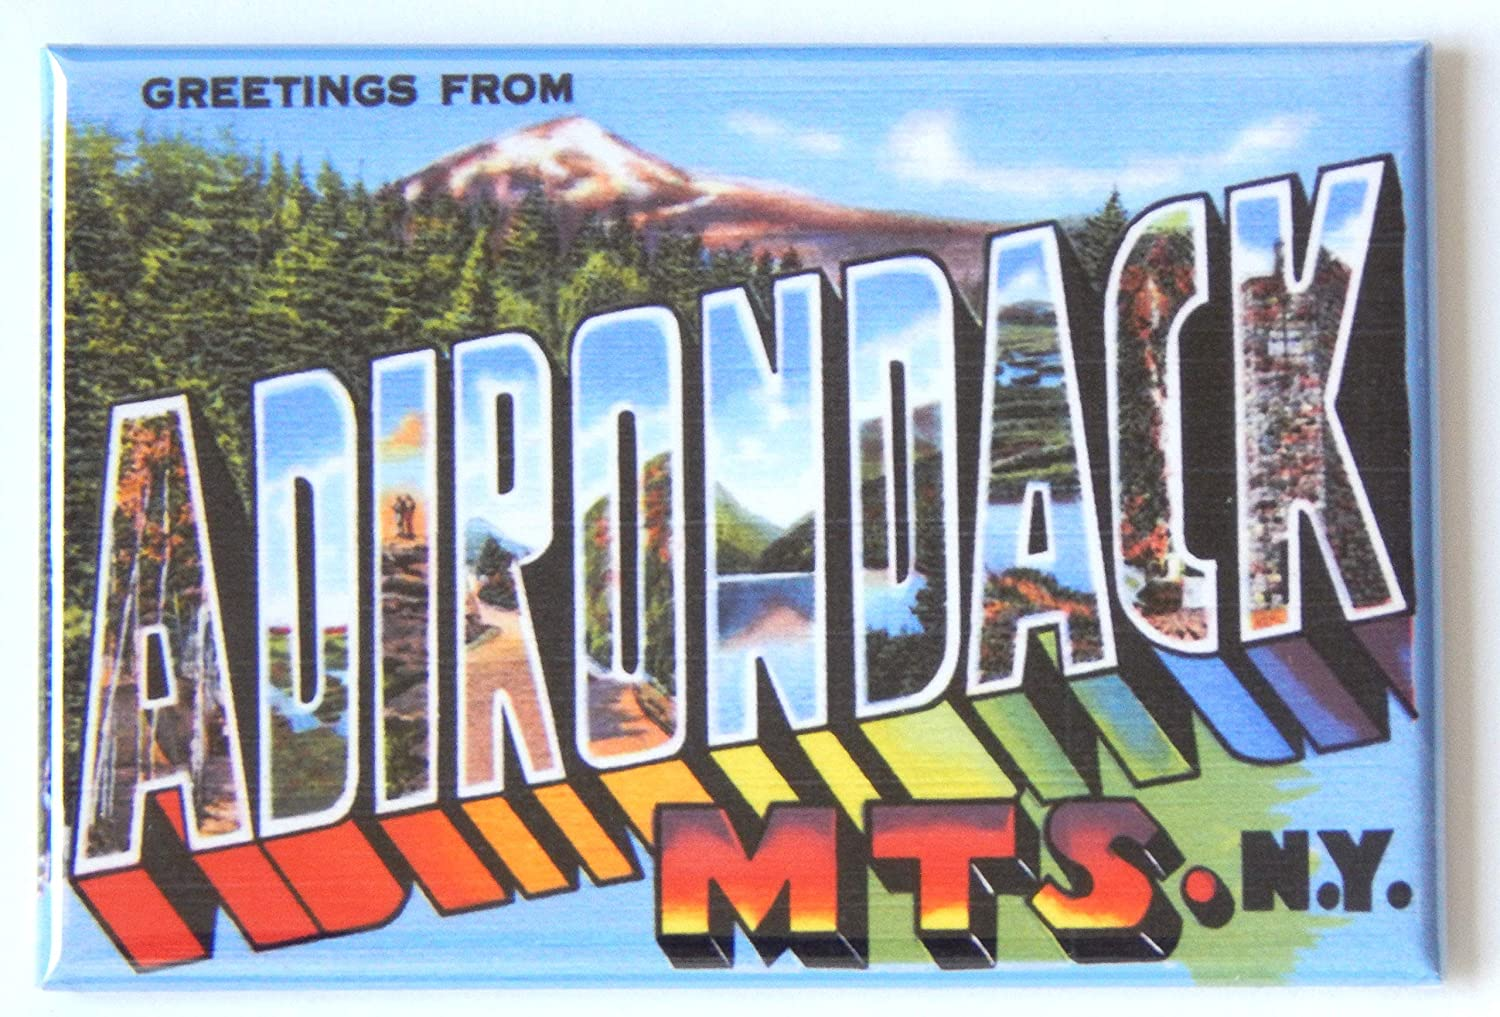 Greetings from Adirondack Mountains New York Fridge Magnet (2 x 3 inches)